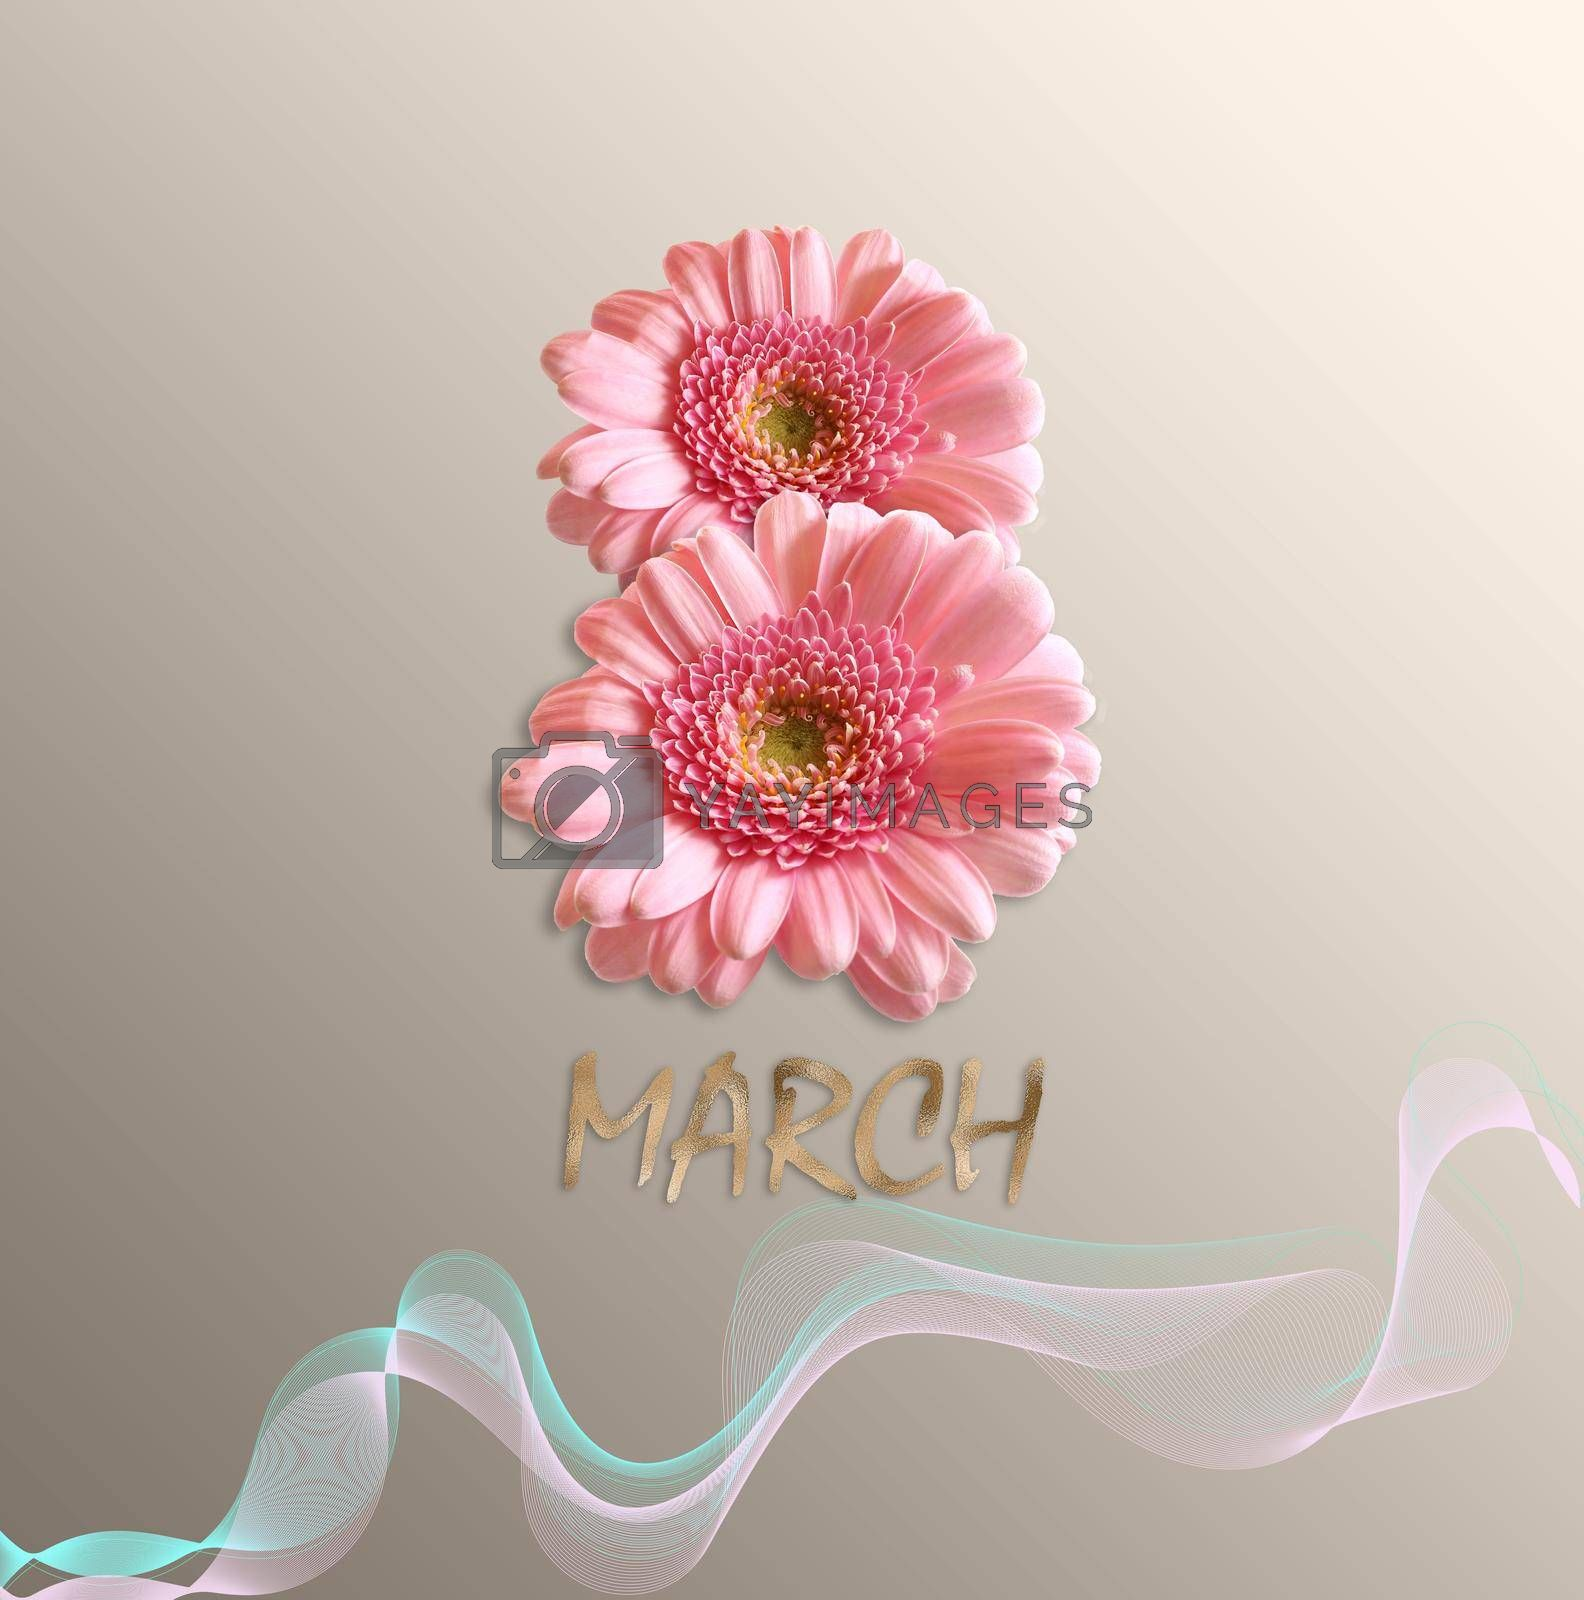 8th March, Women's day design of pink flowers gerbera. Gold text March on pastel gold background